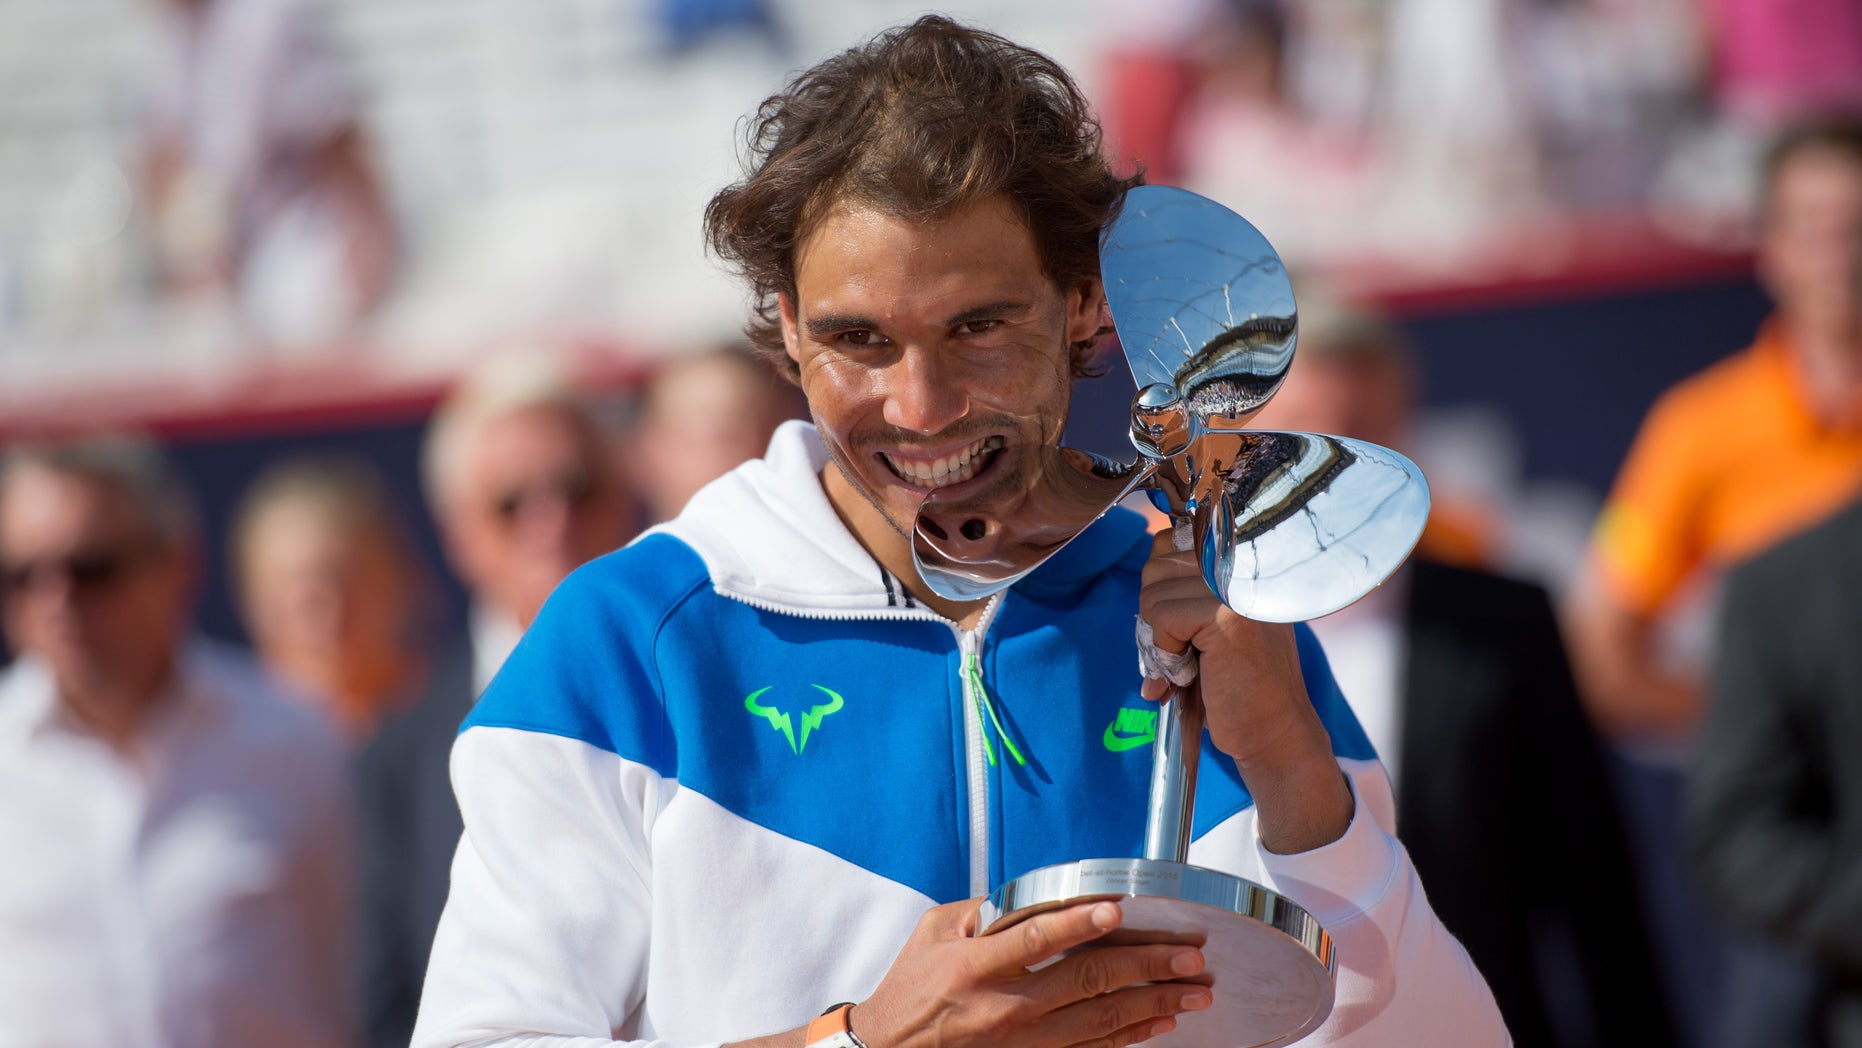 Spain's Rafael Nadal  celebrates with the trophy  after he won  the final match of  the  Hamburg Open ATP tennis tournament  against Fabio Fognini of Italy, in Hamburg, Germany, Sunday Aug. 2, 2015.  (Daniel Reinhardt/dpa via AP)